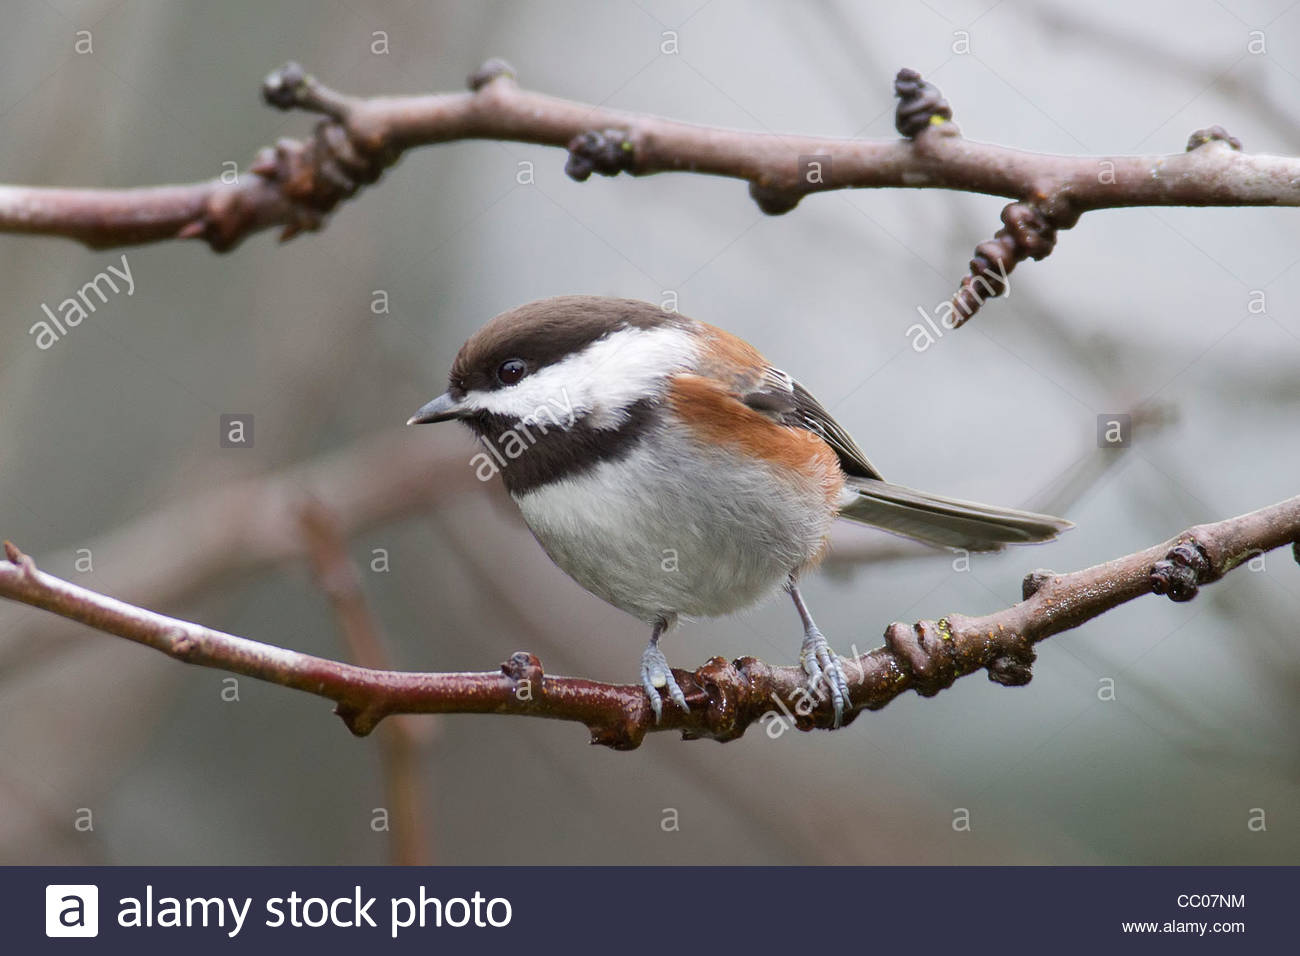 A chestnut-backed chickadee (Poecile rufescens) rests on a bare branch in winter. - Stock Image